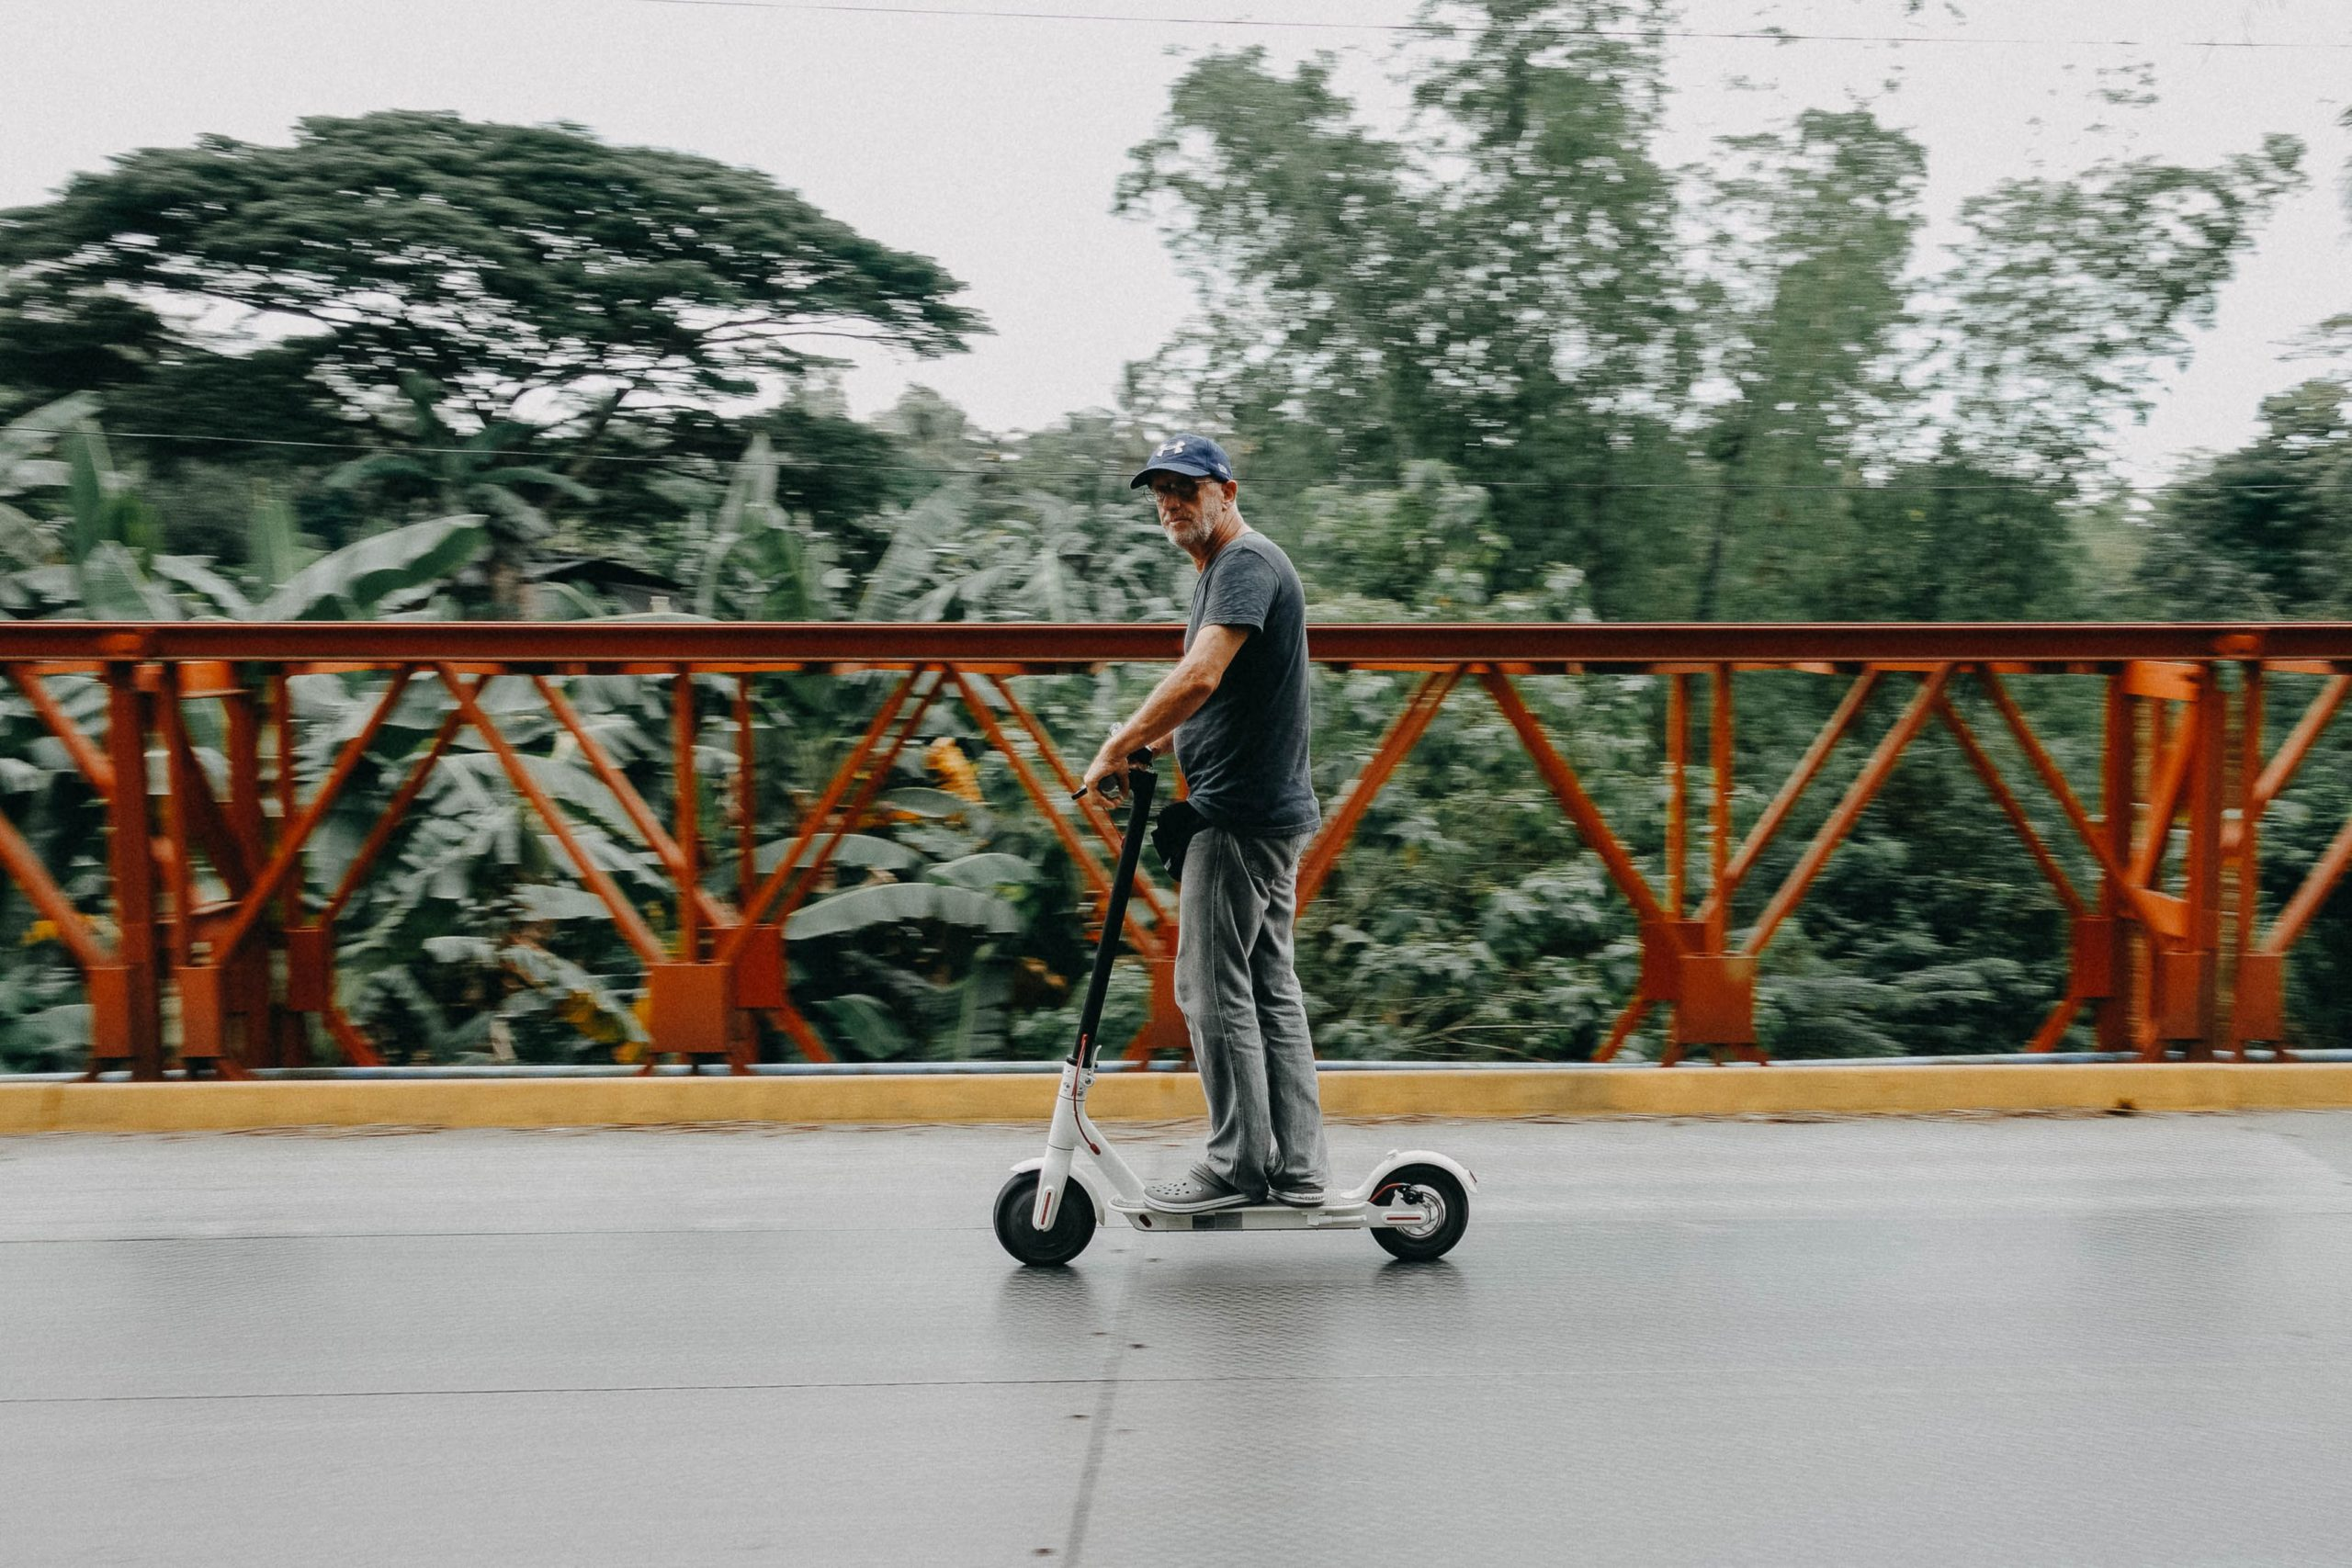 E-scooters are less eco-friendly than taking the bus, cycling or using mopeds, new findings suggest. [Credit: Denniz Futalan, Pexels | CC]